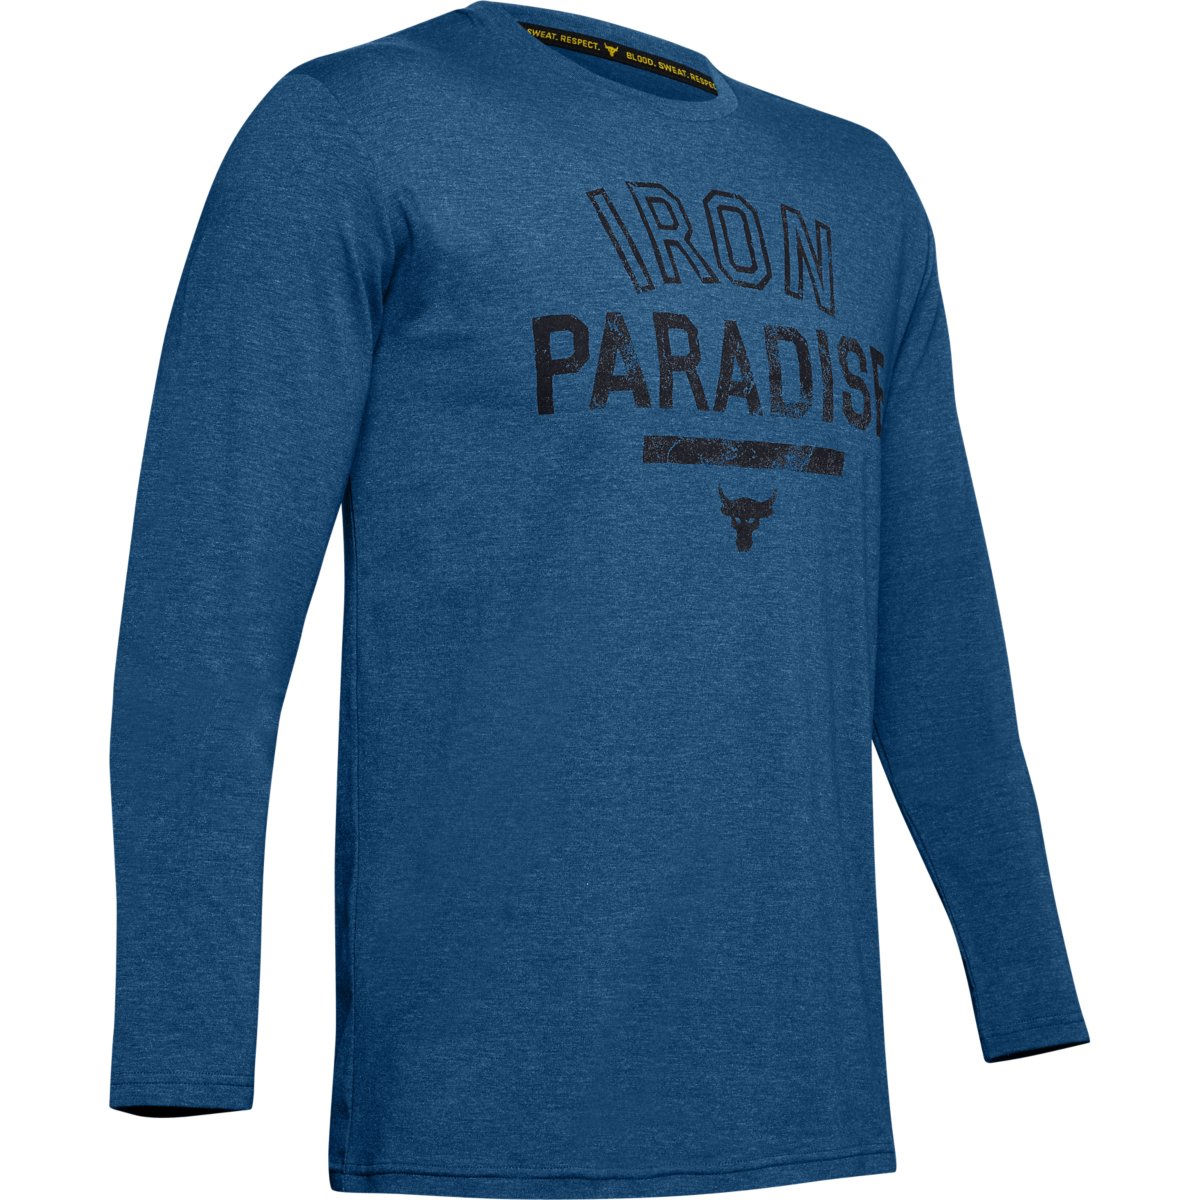 Under Armour Project Rock Iron Paradise LS   Long Sleeve Running Tops